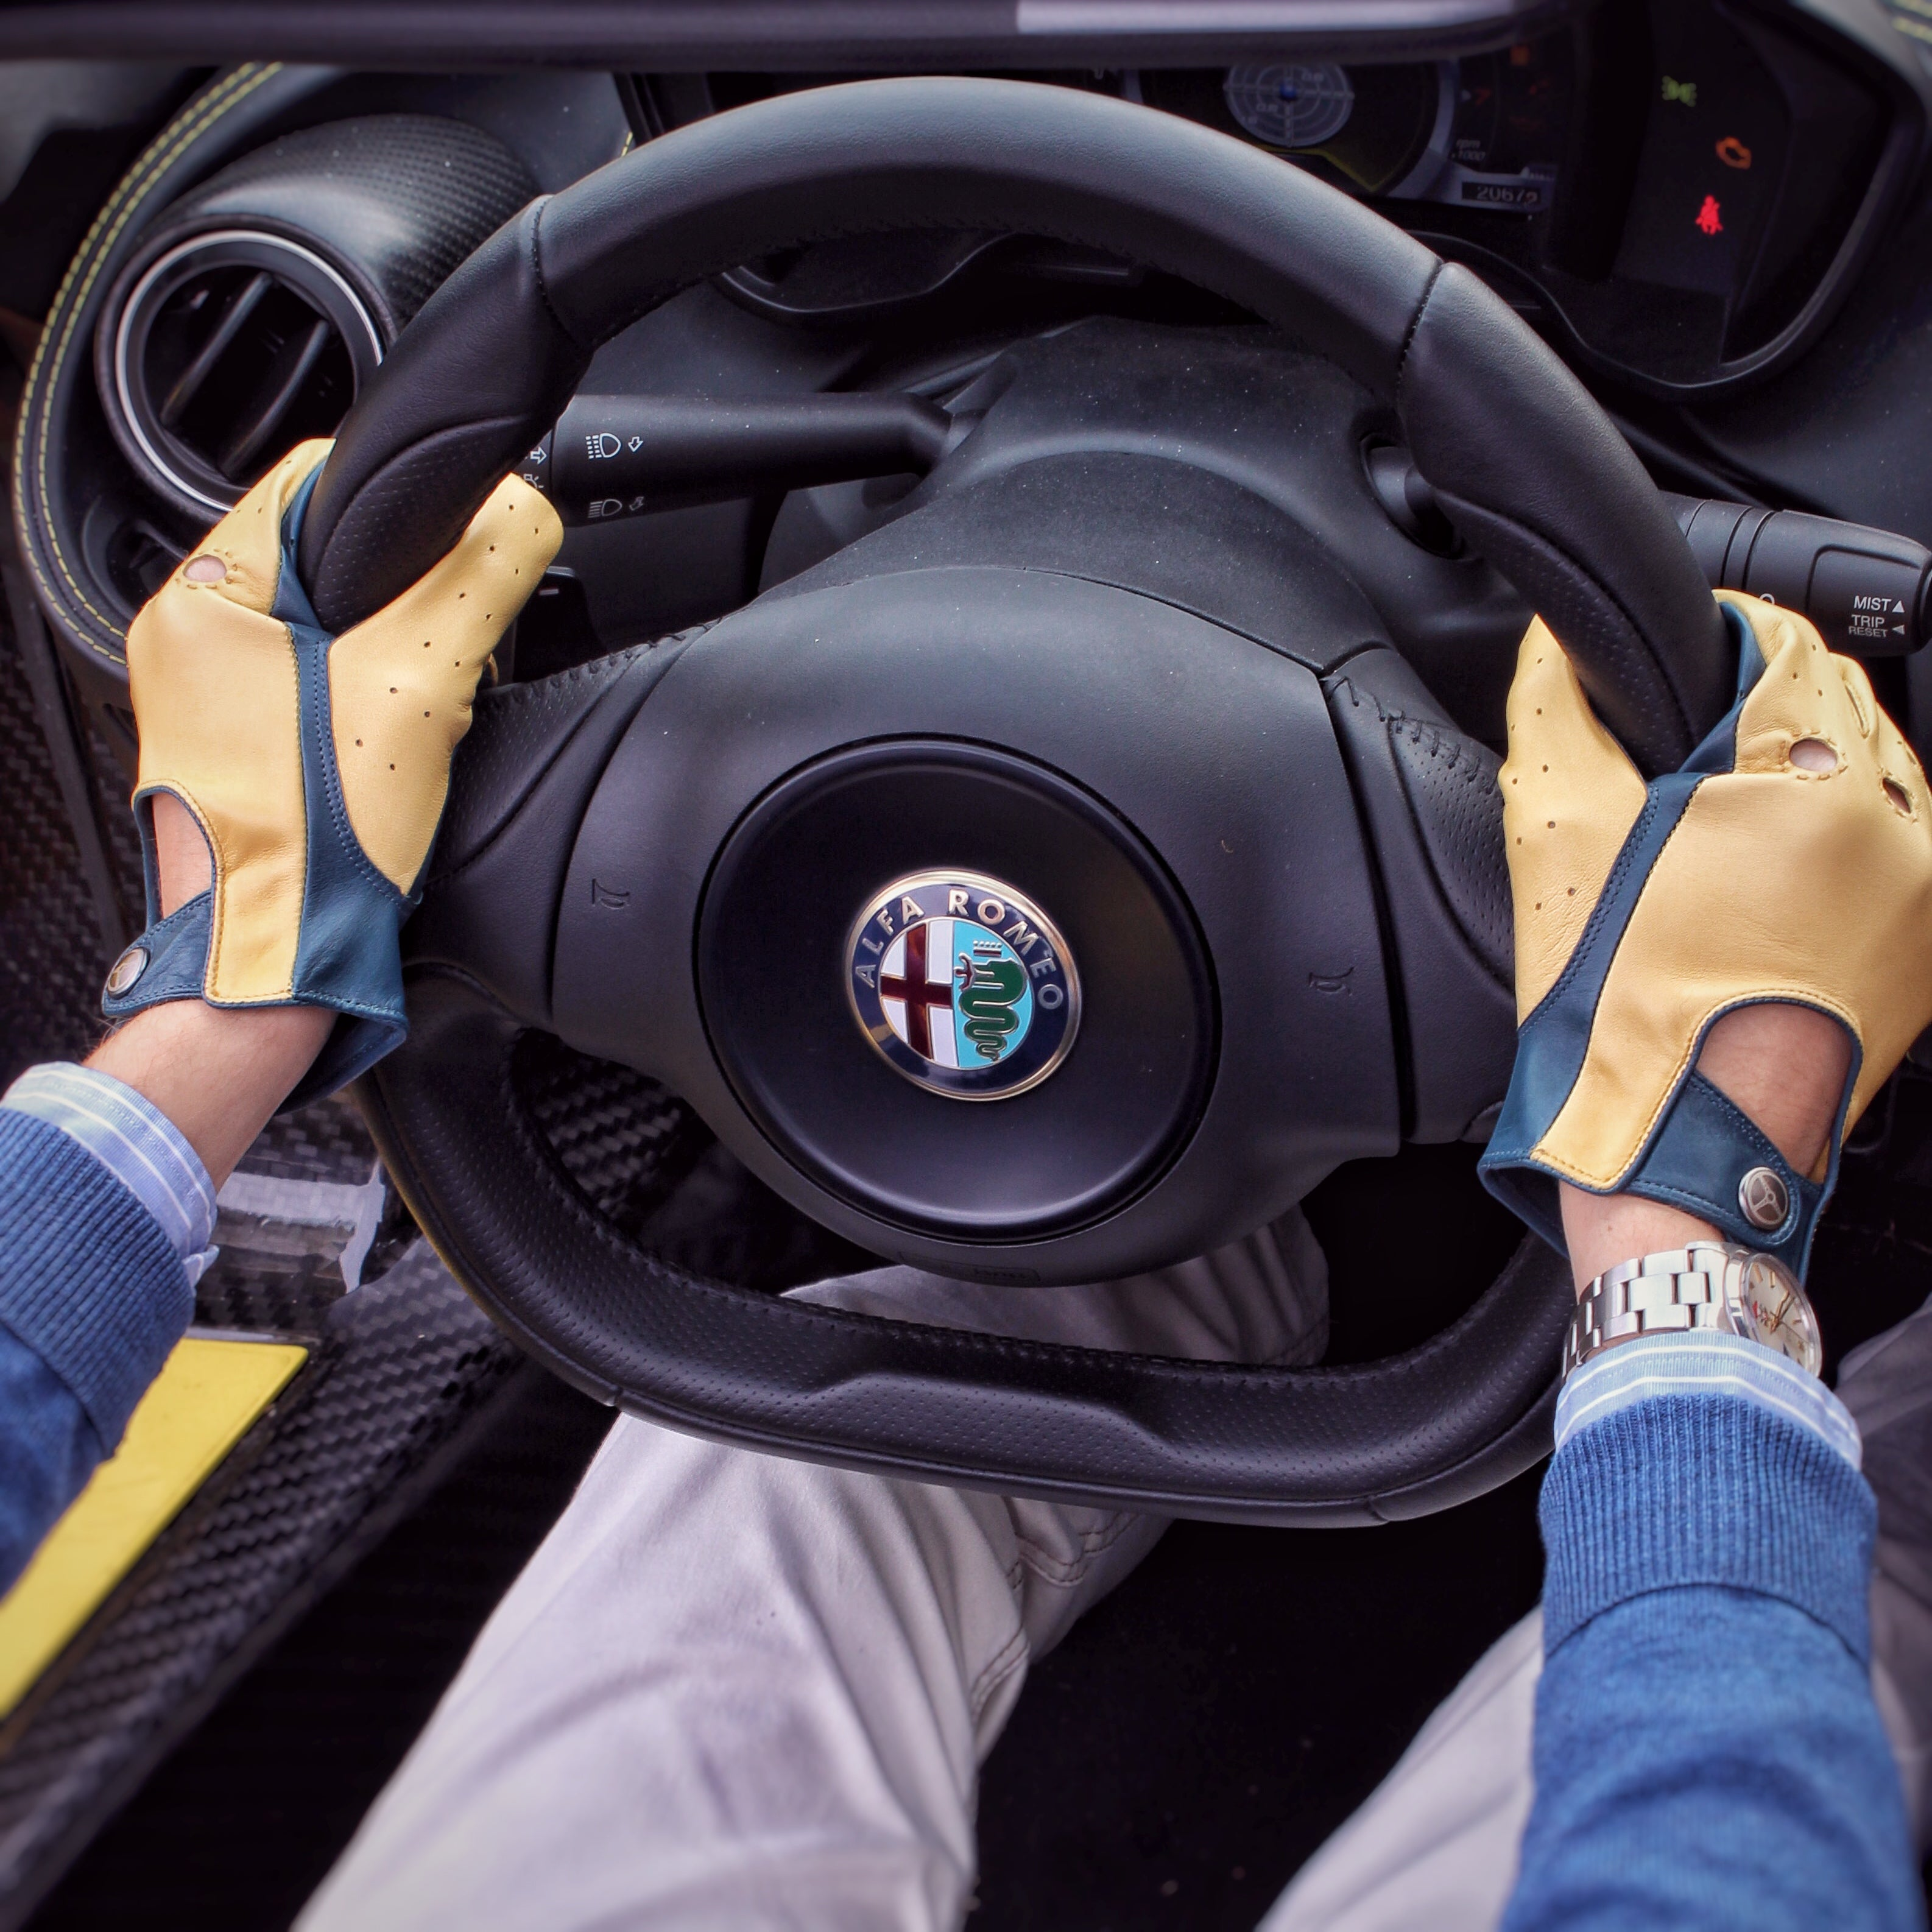 Driving gloves youtube -  Of Style And Passion For The Four Wheels Check Out The Entire Collection Of Driving Gloves By The Outlierman To Find The One That Best Suits You